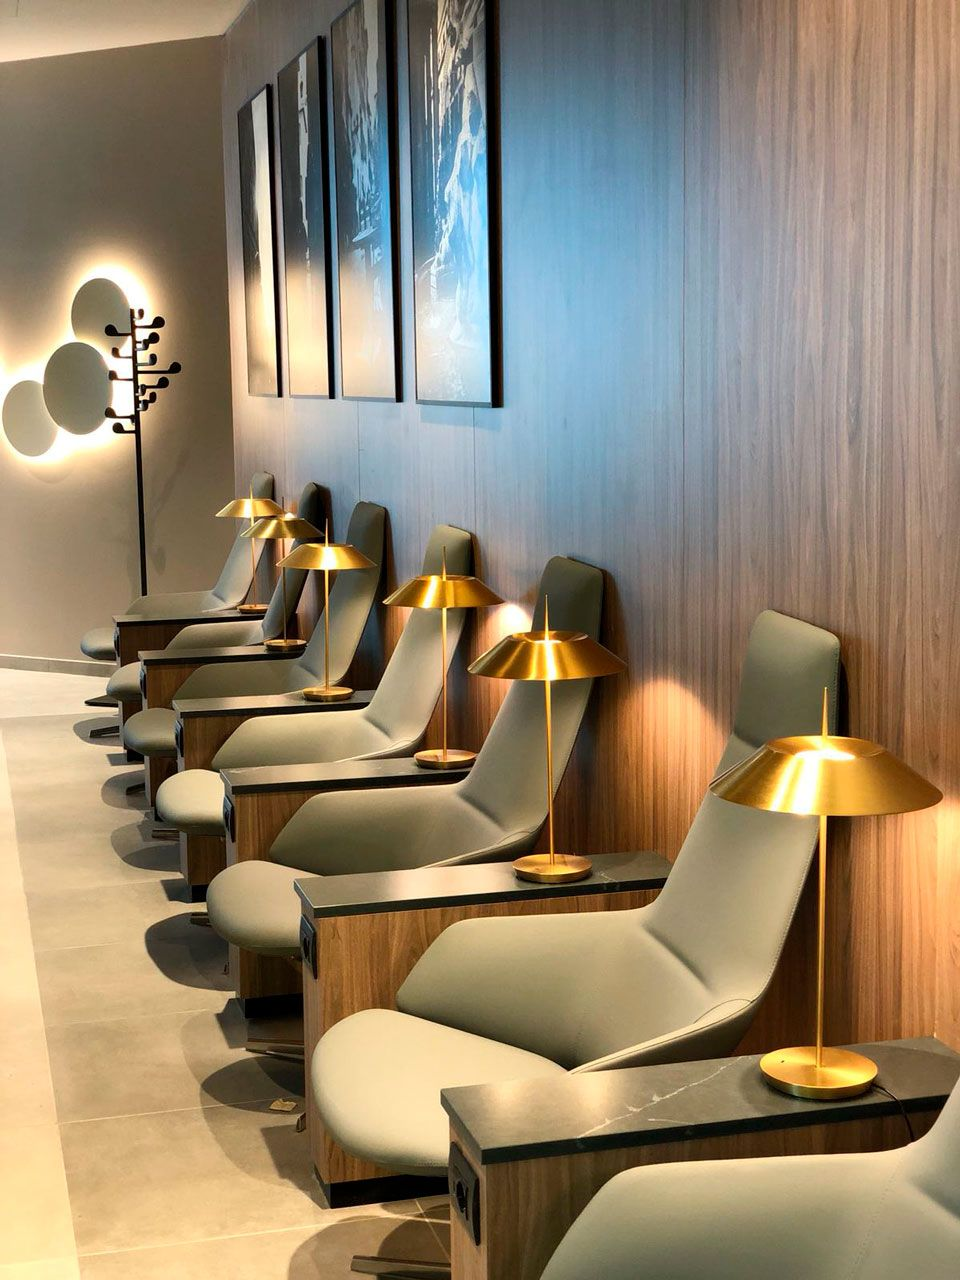 Brightens Rome's Airport Lounges